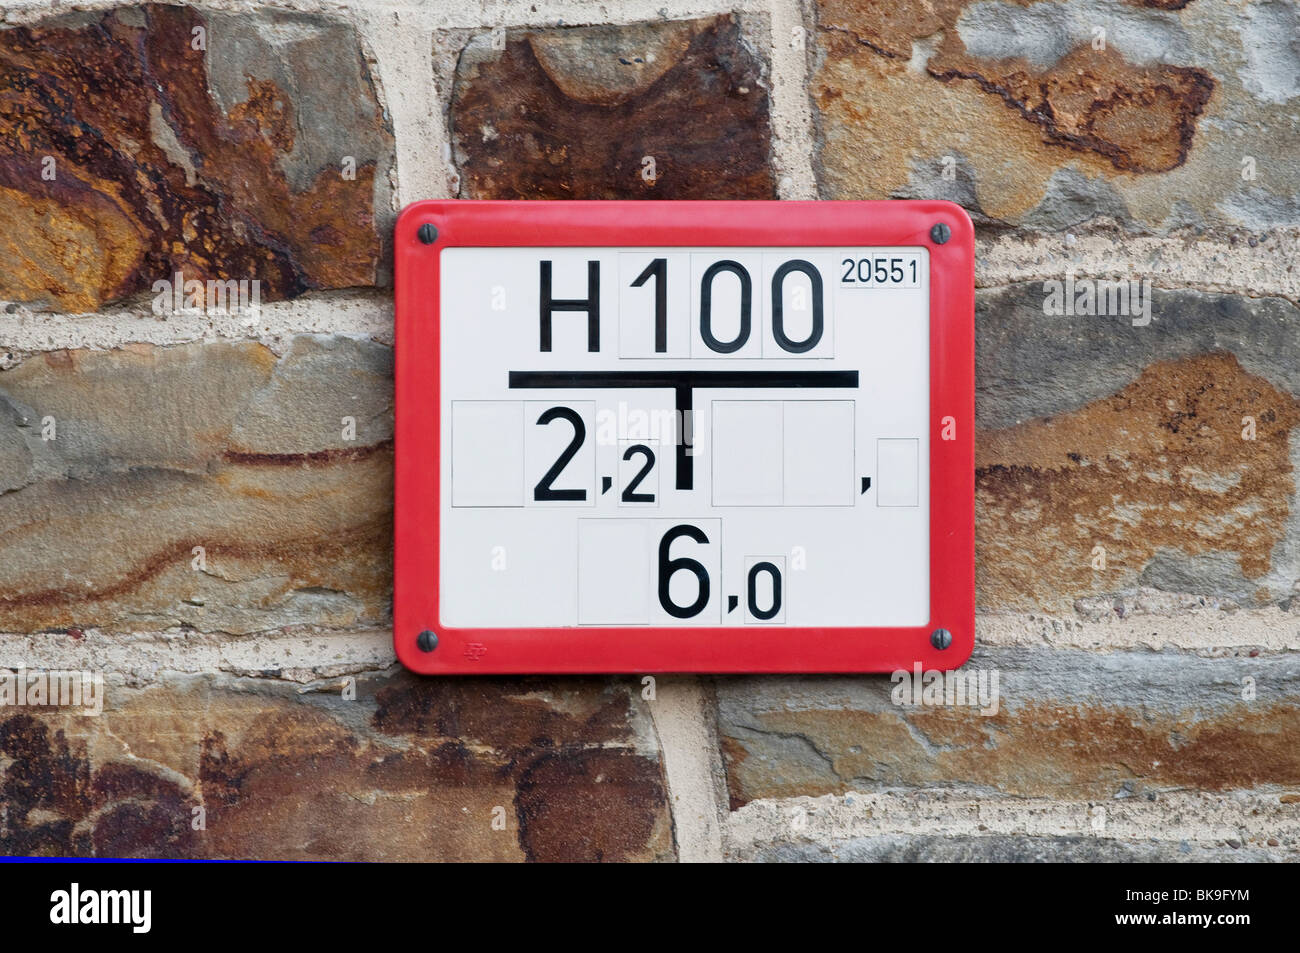 Hydrant sign on a rustic house wall, building bricks - Stock Image